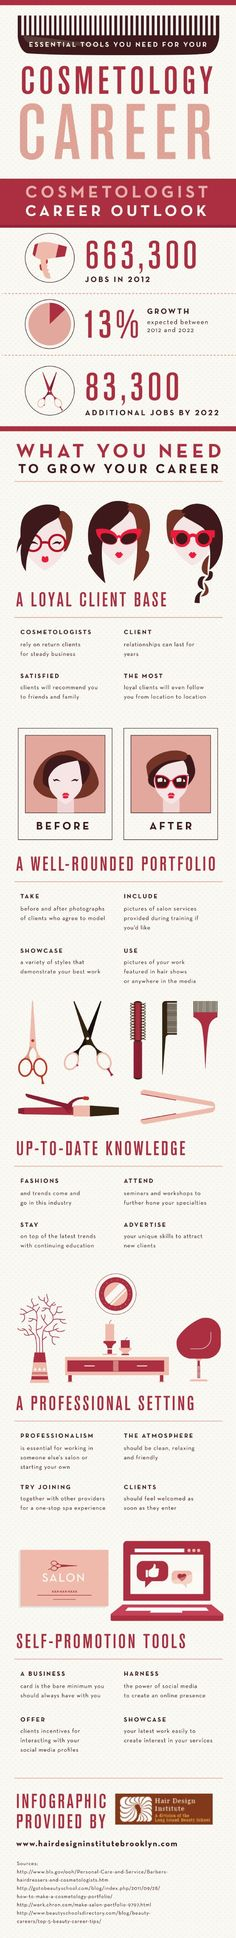 Many savvy cosmetology school graduates succeed in their career field with self-promotional tools. A premier cosmetology school in Brooklyn recommends carrying business cards at all times, interacting with prospective clients on social media, and showcasing their skills. To find out more, review this helpful infographic.: